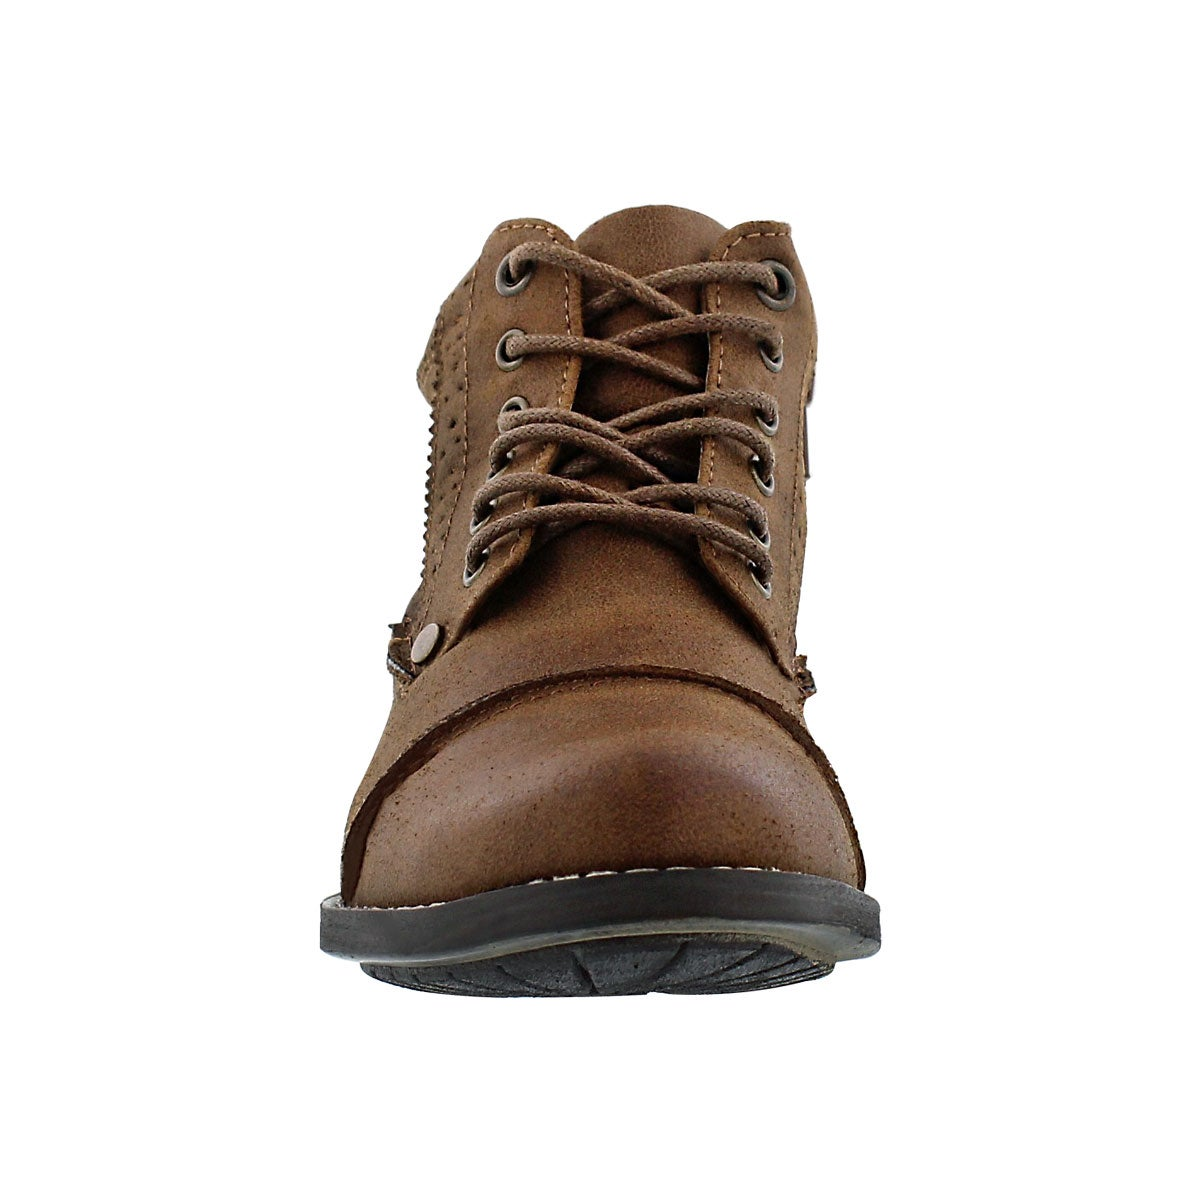 Lds Belicia II brown lace up ankle boot